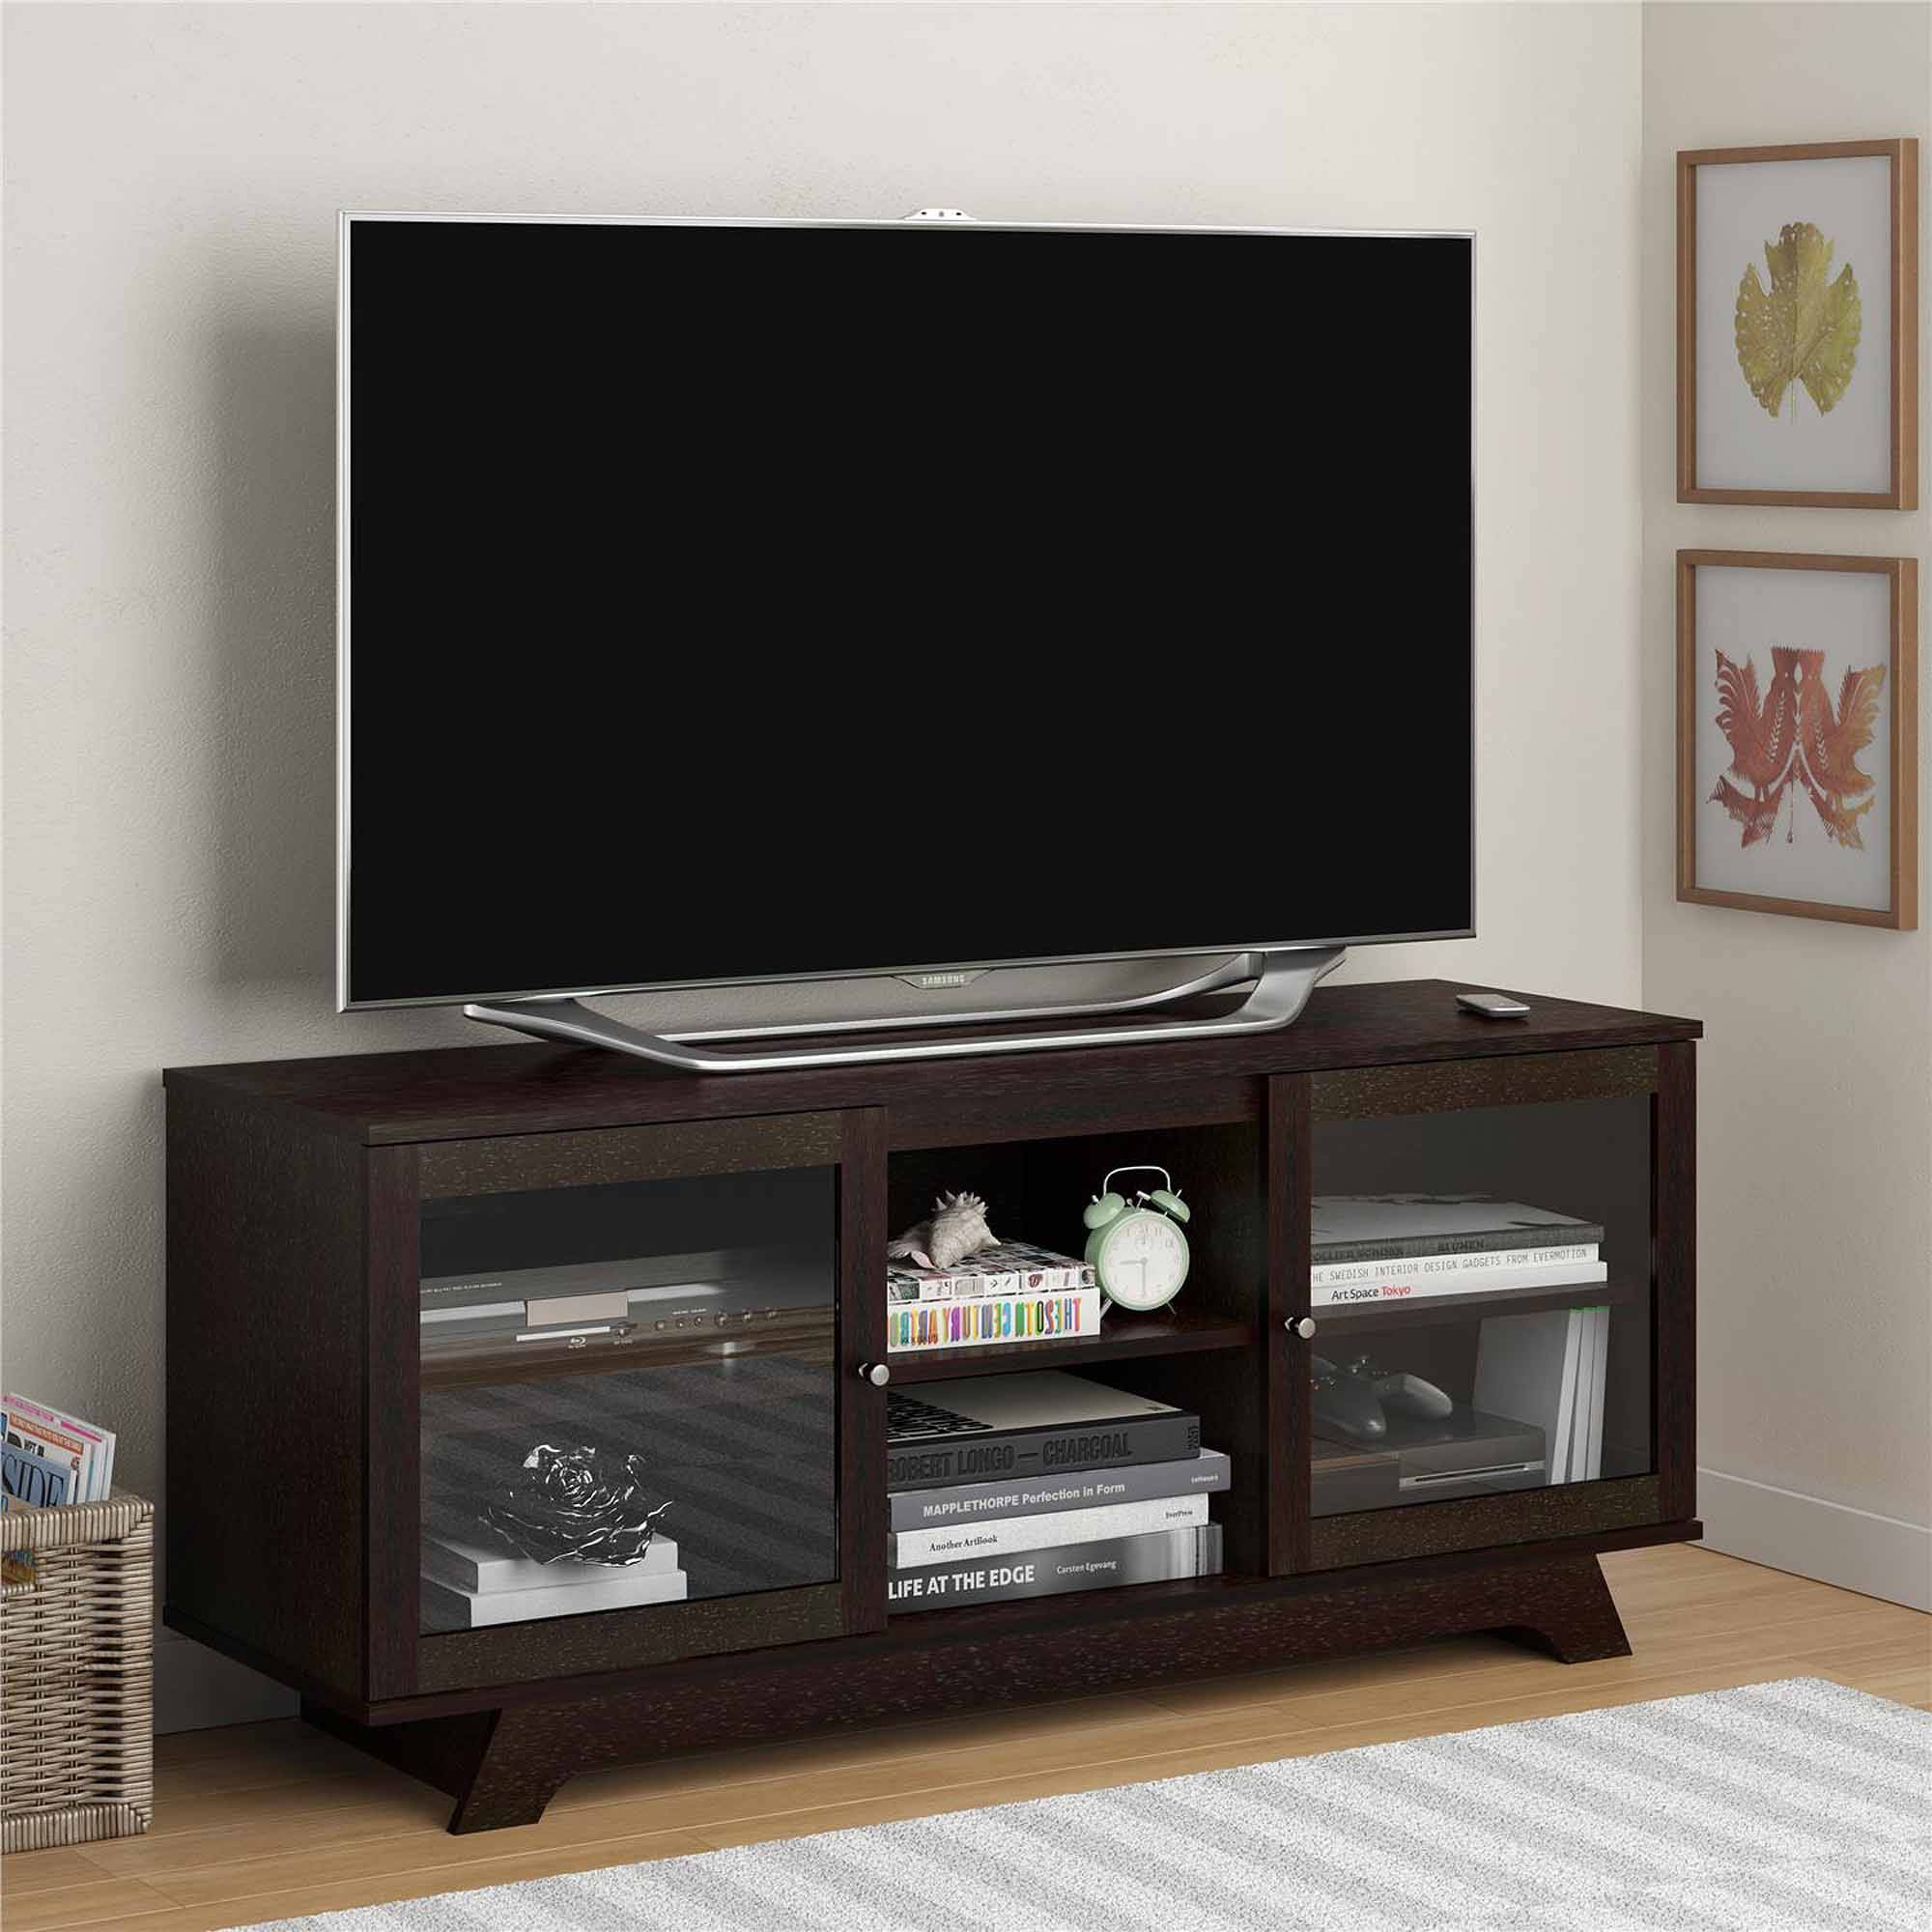 Tv Stands & Entertainment Centers - Walmart inside Tv Stands for Small Spaces (Image 15 of 15)